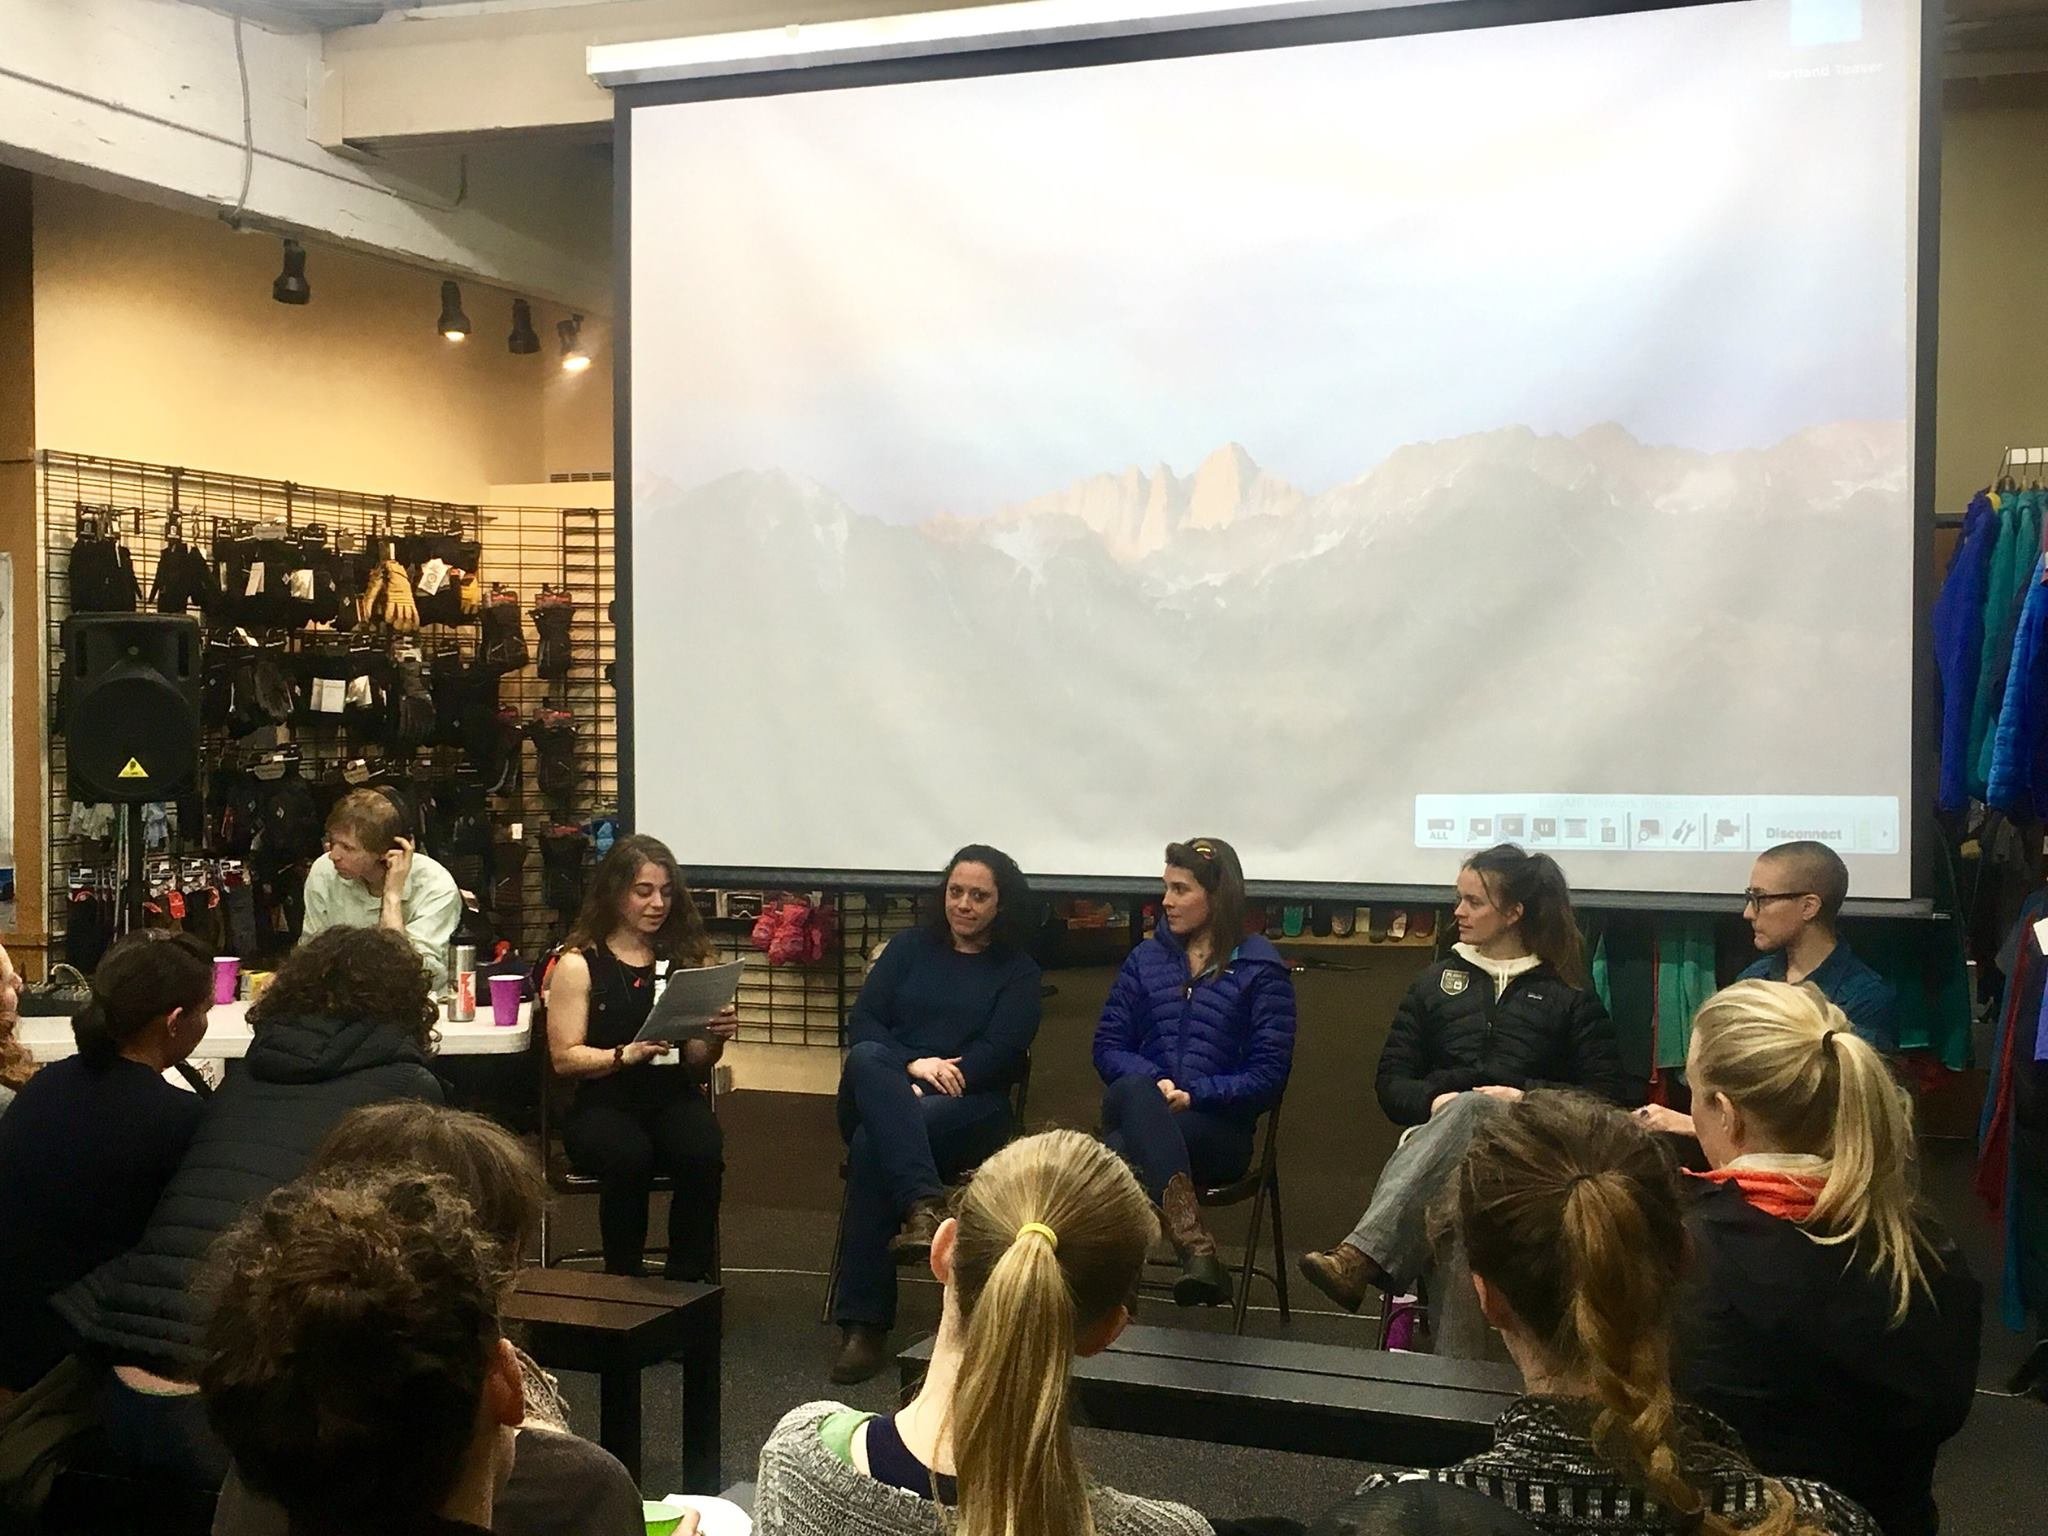 Terra Incognita Media's panel discussion on Environmentalism, Gender, and the Outdoors. From left to right:Erin Monahan (founder of TIM), Ruby McConnell author and geologist, Aisha Weinhold founder of No Man's Land Film Festival, Katie Crafts explorer and photographer, and Kathryn Stevens of The Miller Scholarship Foundation.